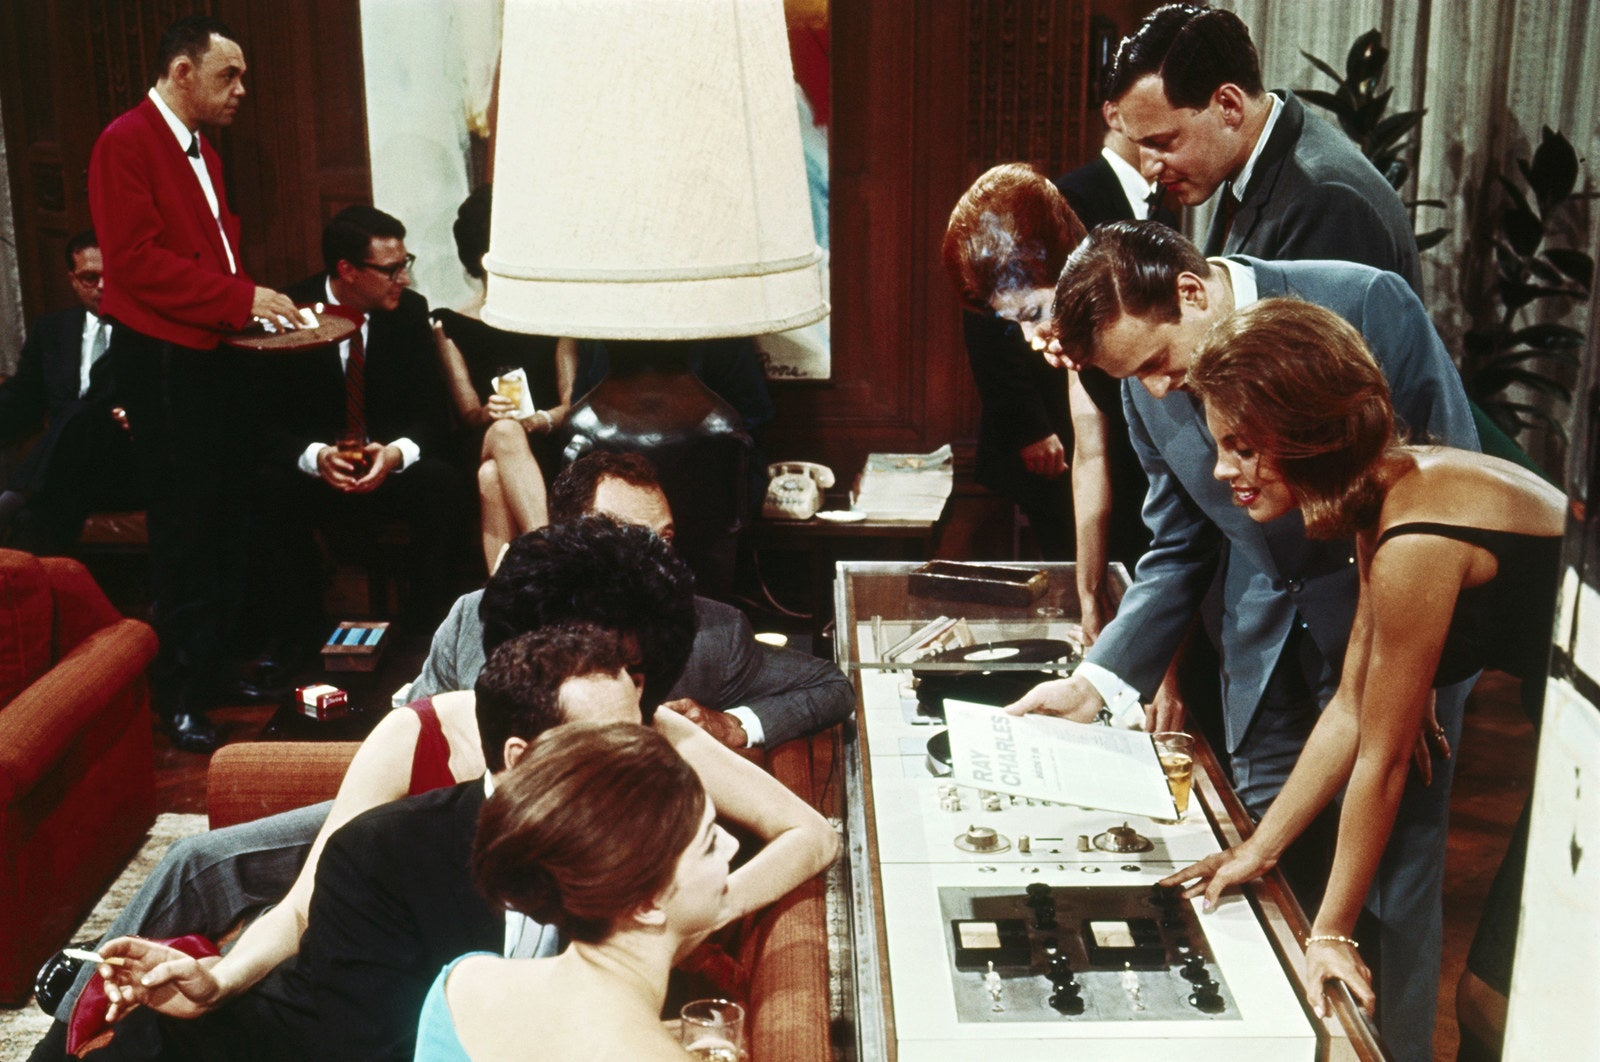 A crowd of partygoers inspect Hefner's stereo system at his Playboy Mansion in Chicago, circa 1966.